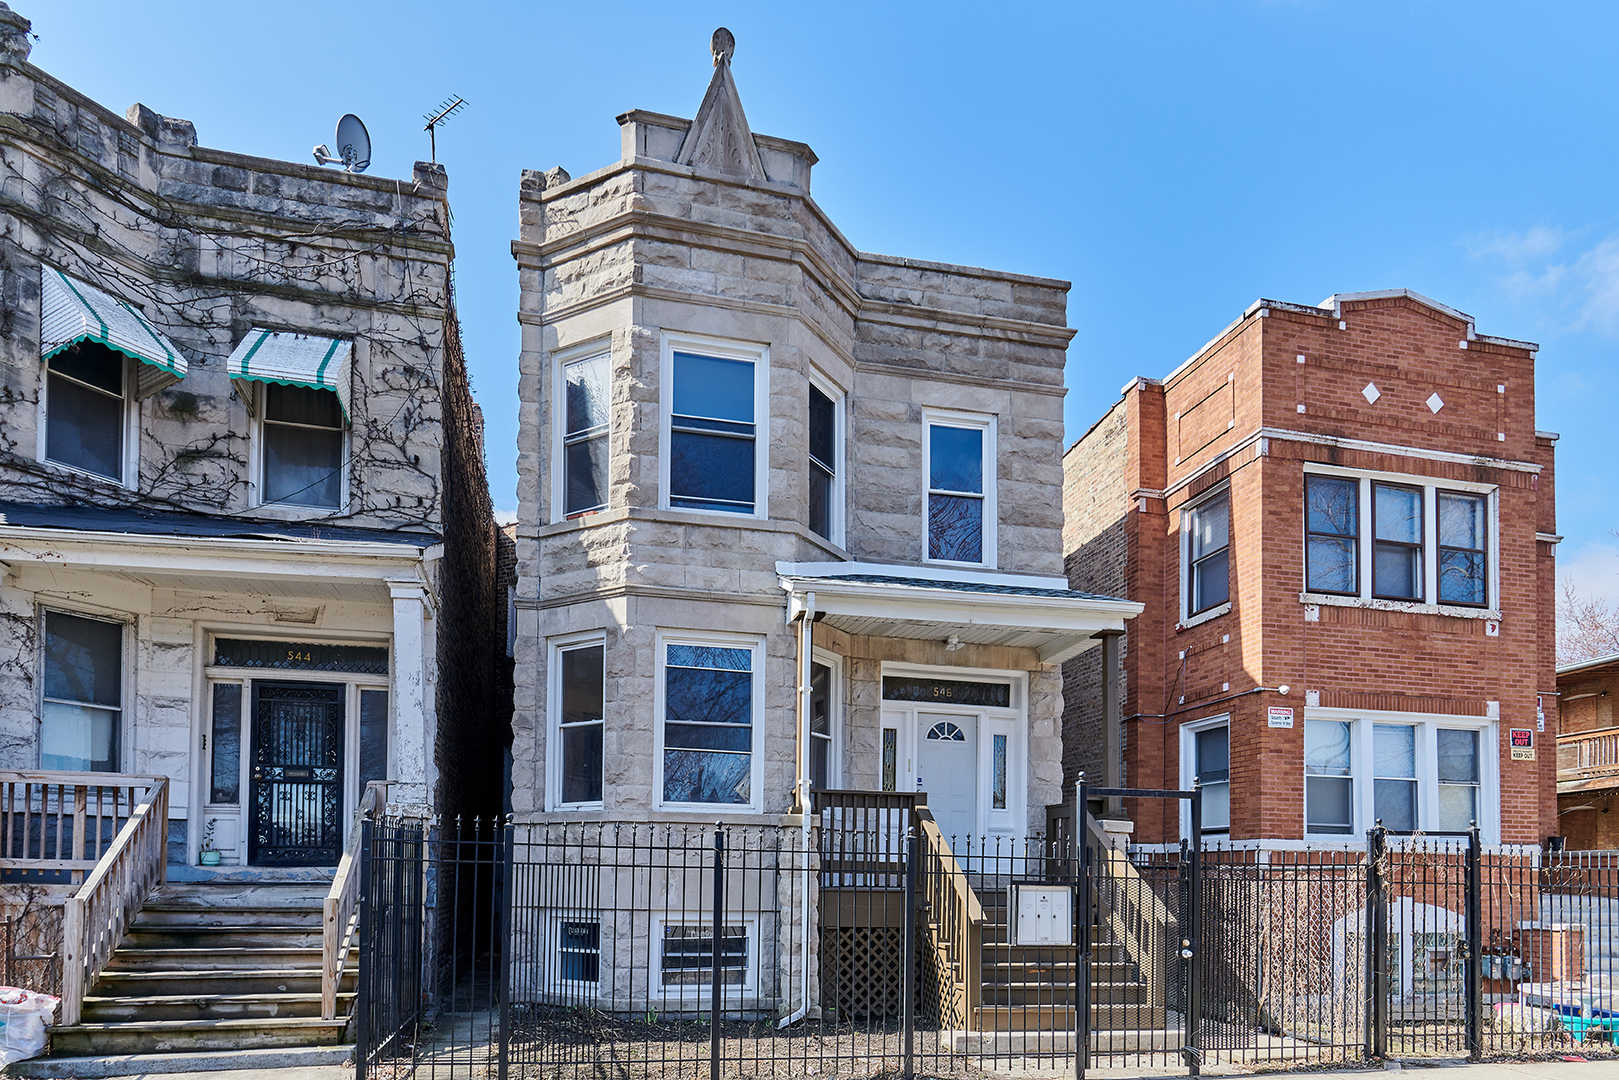 546 Hamlin ,Chicago, Illinois 60624